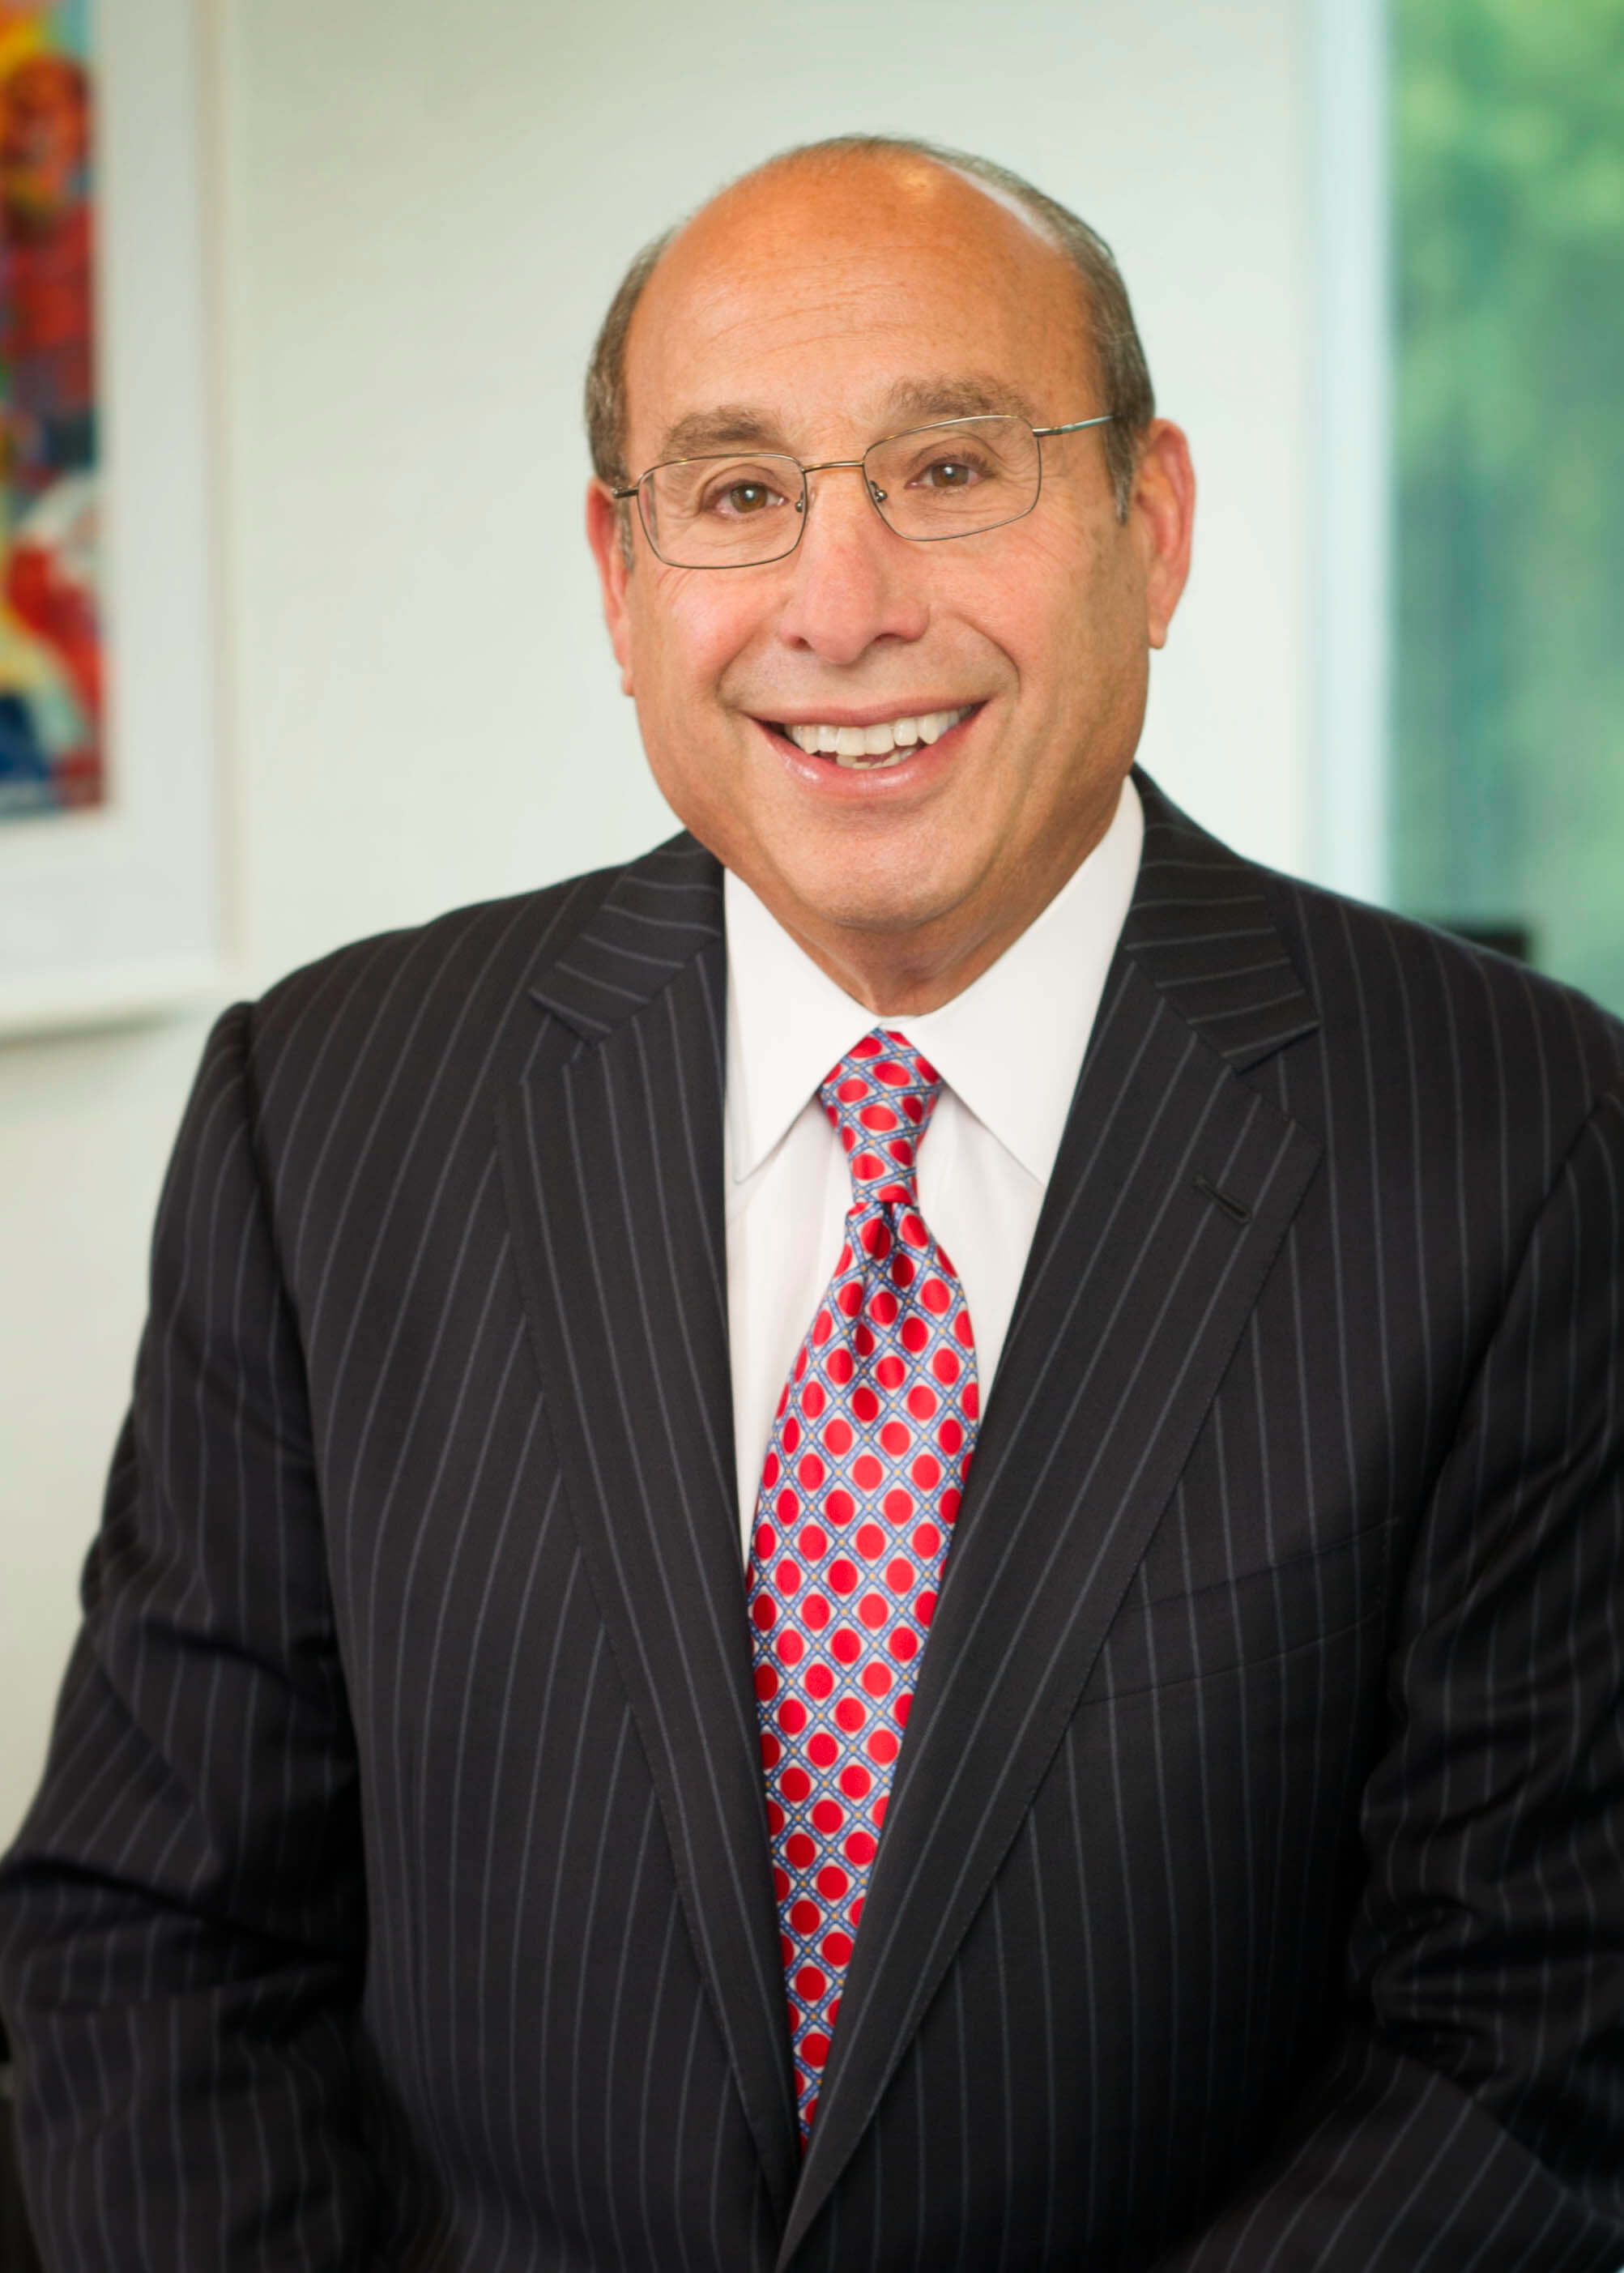 A photo of Barry H. Ostrowsky